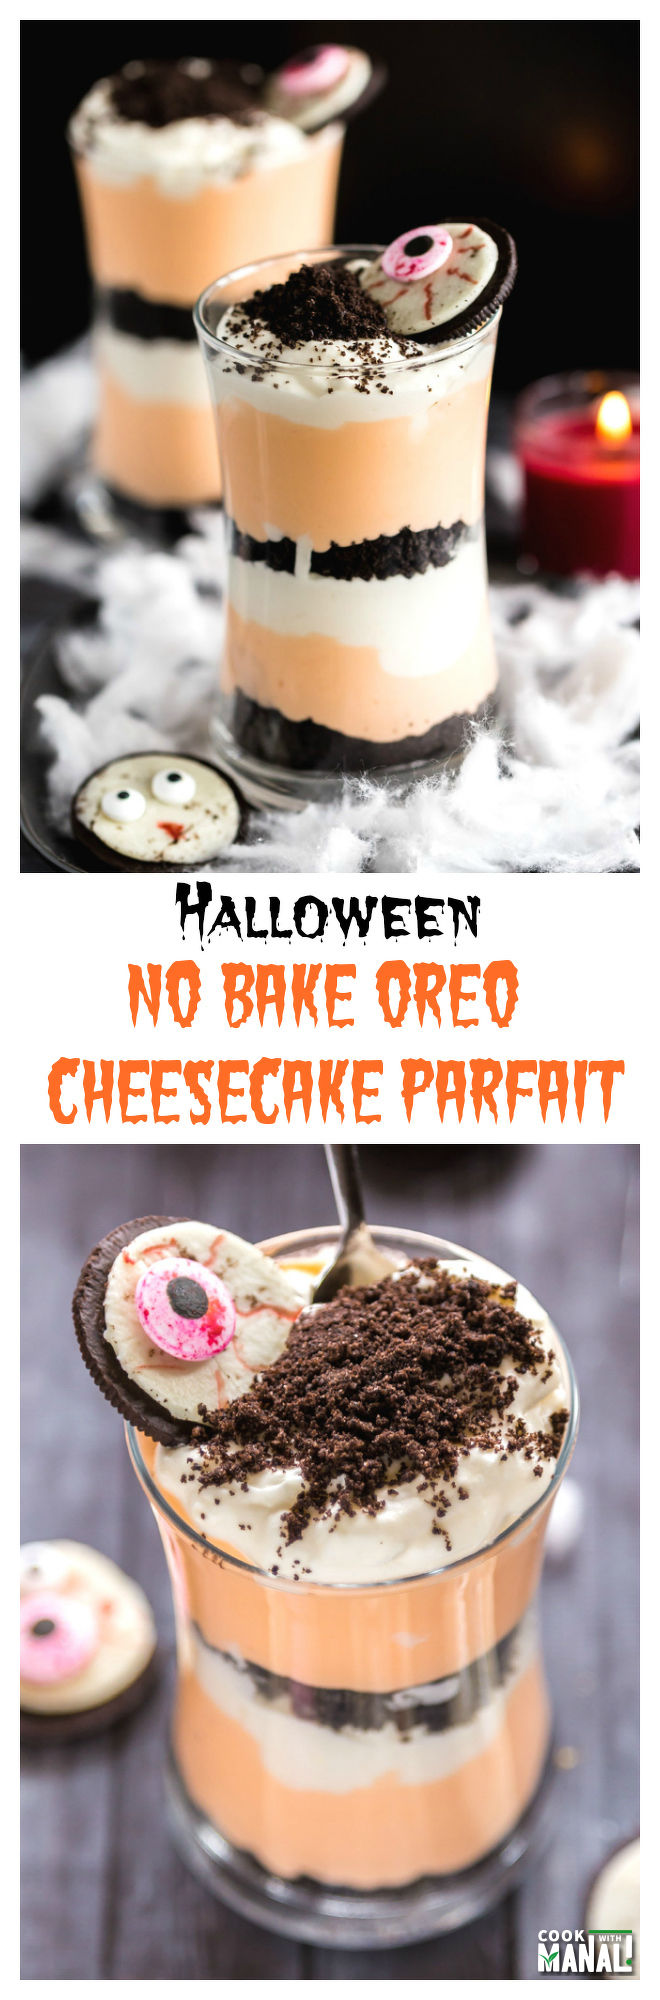 No Bake Oreo Cheesecake Parfait for Halloween Collage